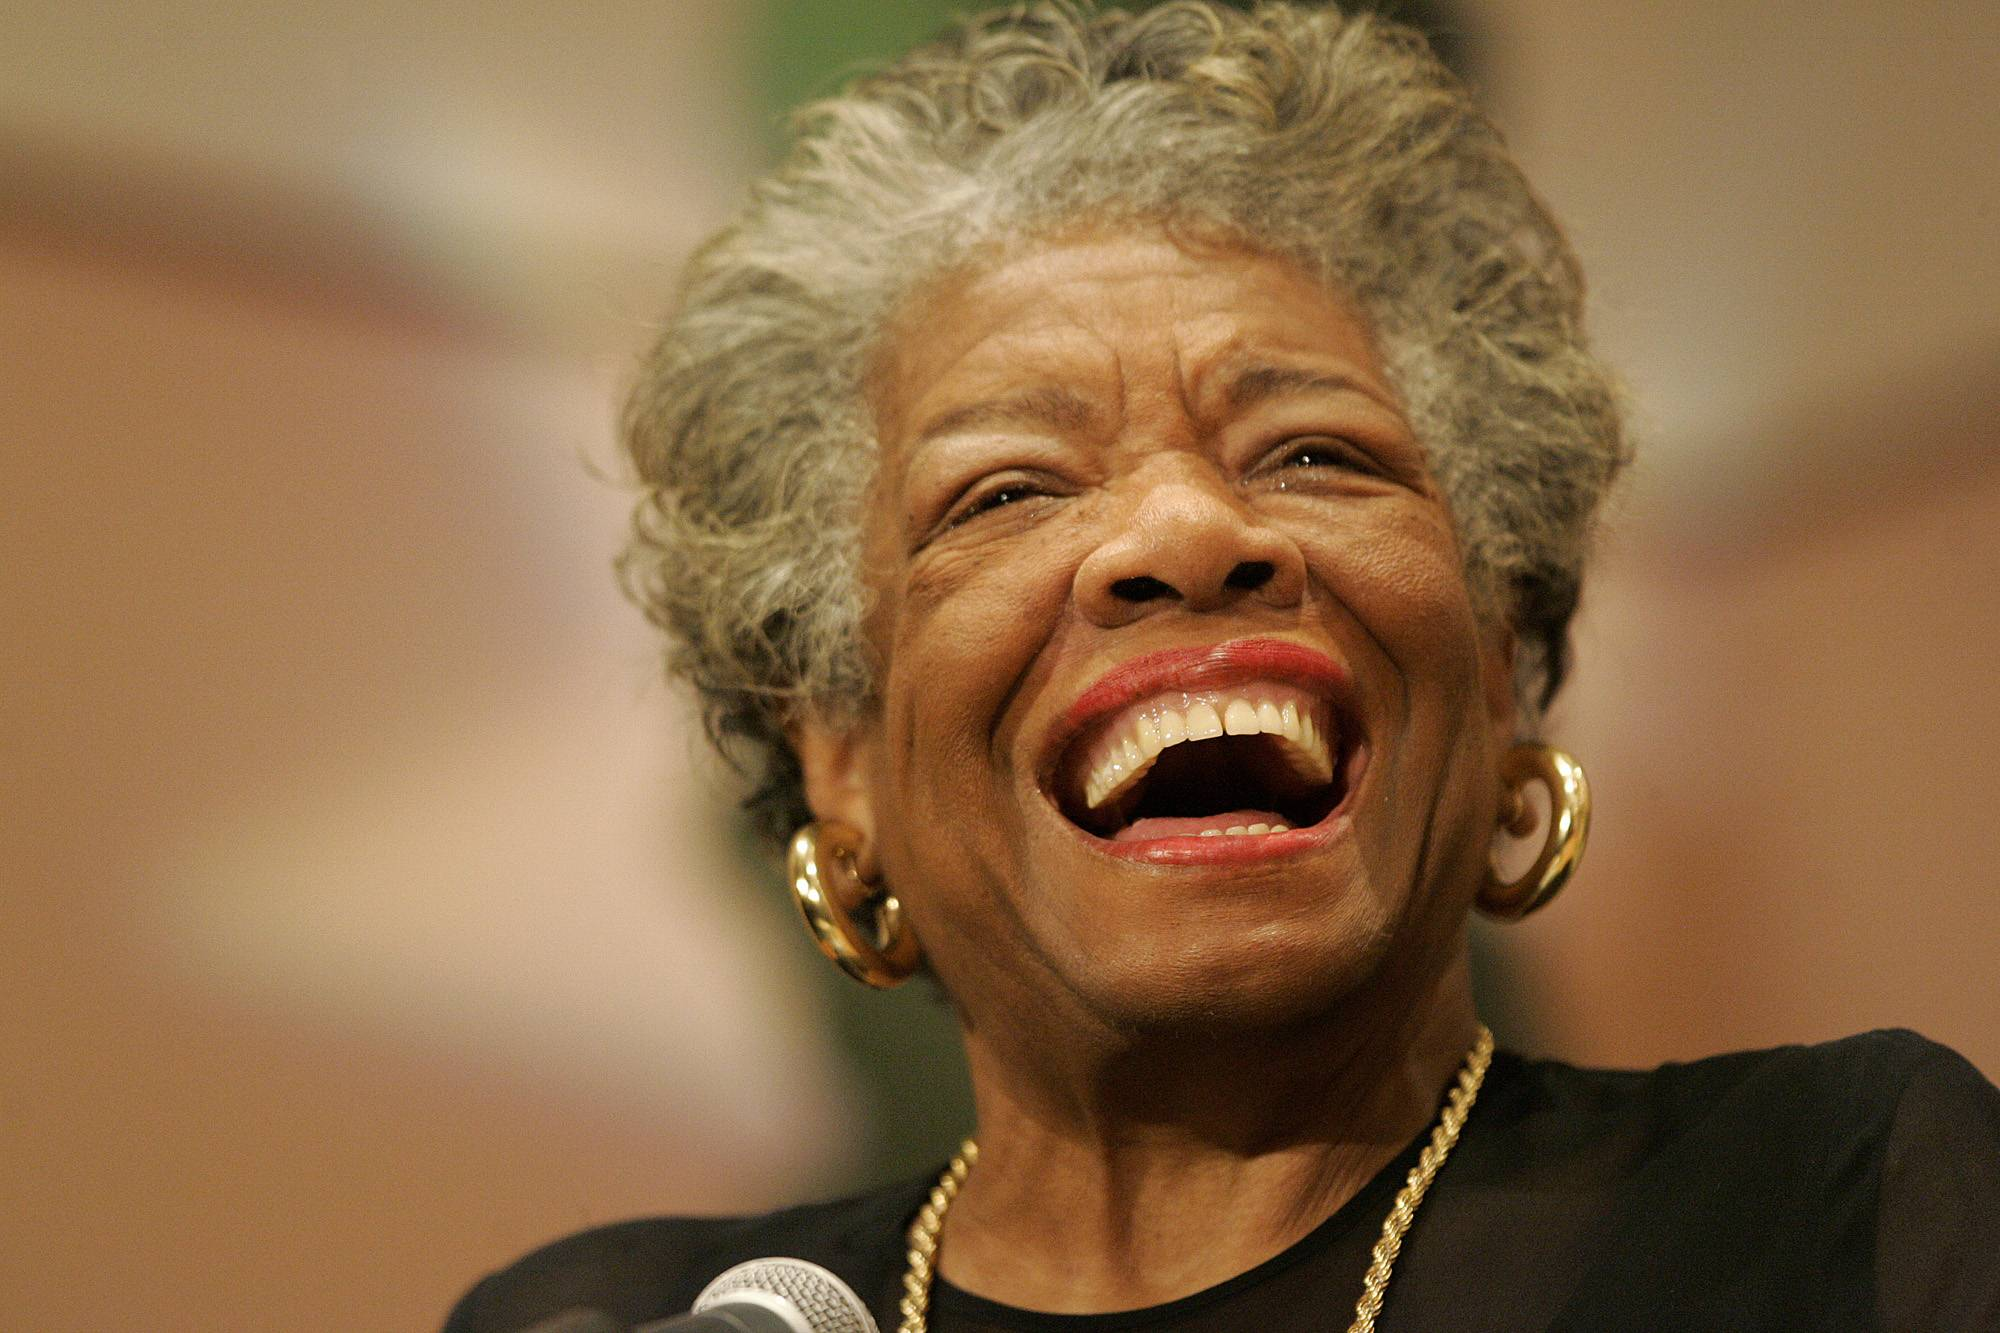 Poet, actress and civil rights champion Maya Angelou died in May.